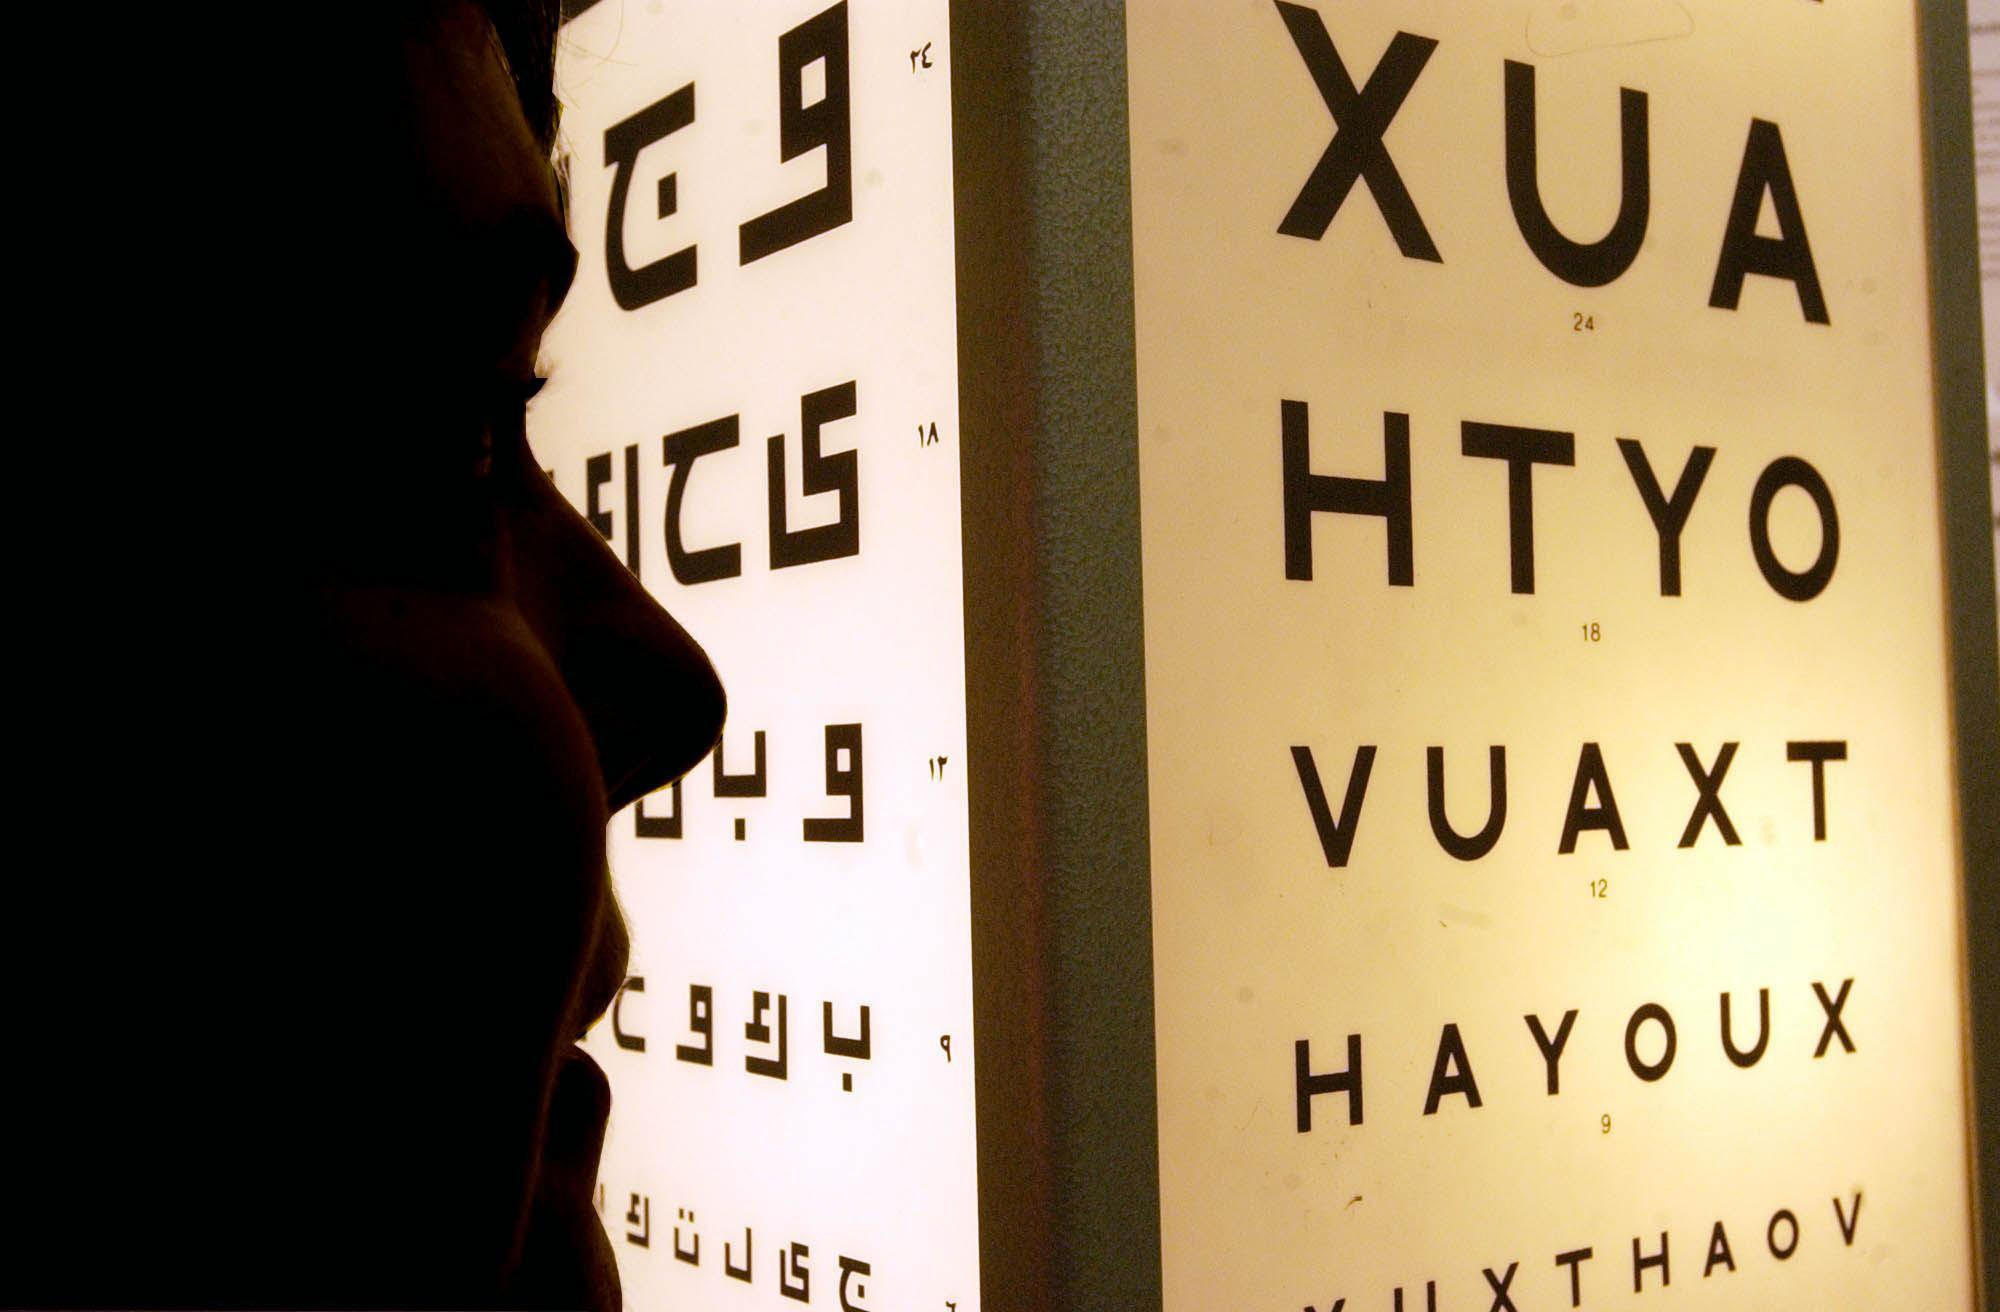 More than 200 people in the UK are diagnosed with a macular disease every day. Picture by Chris Young/ PA Wire